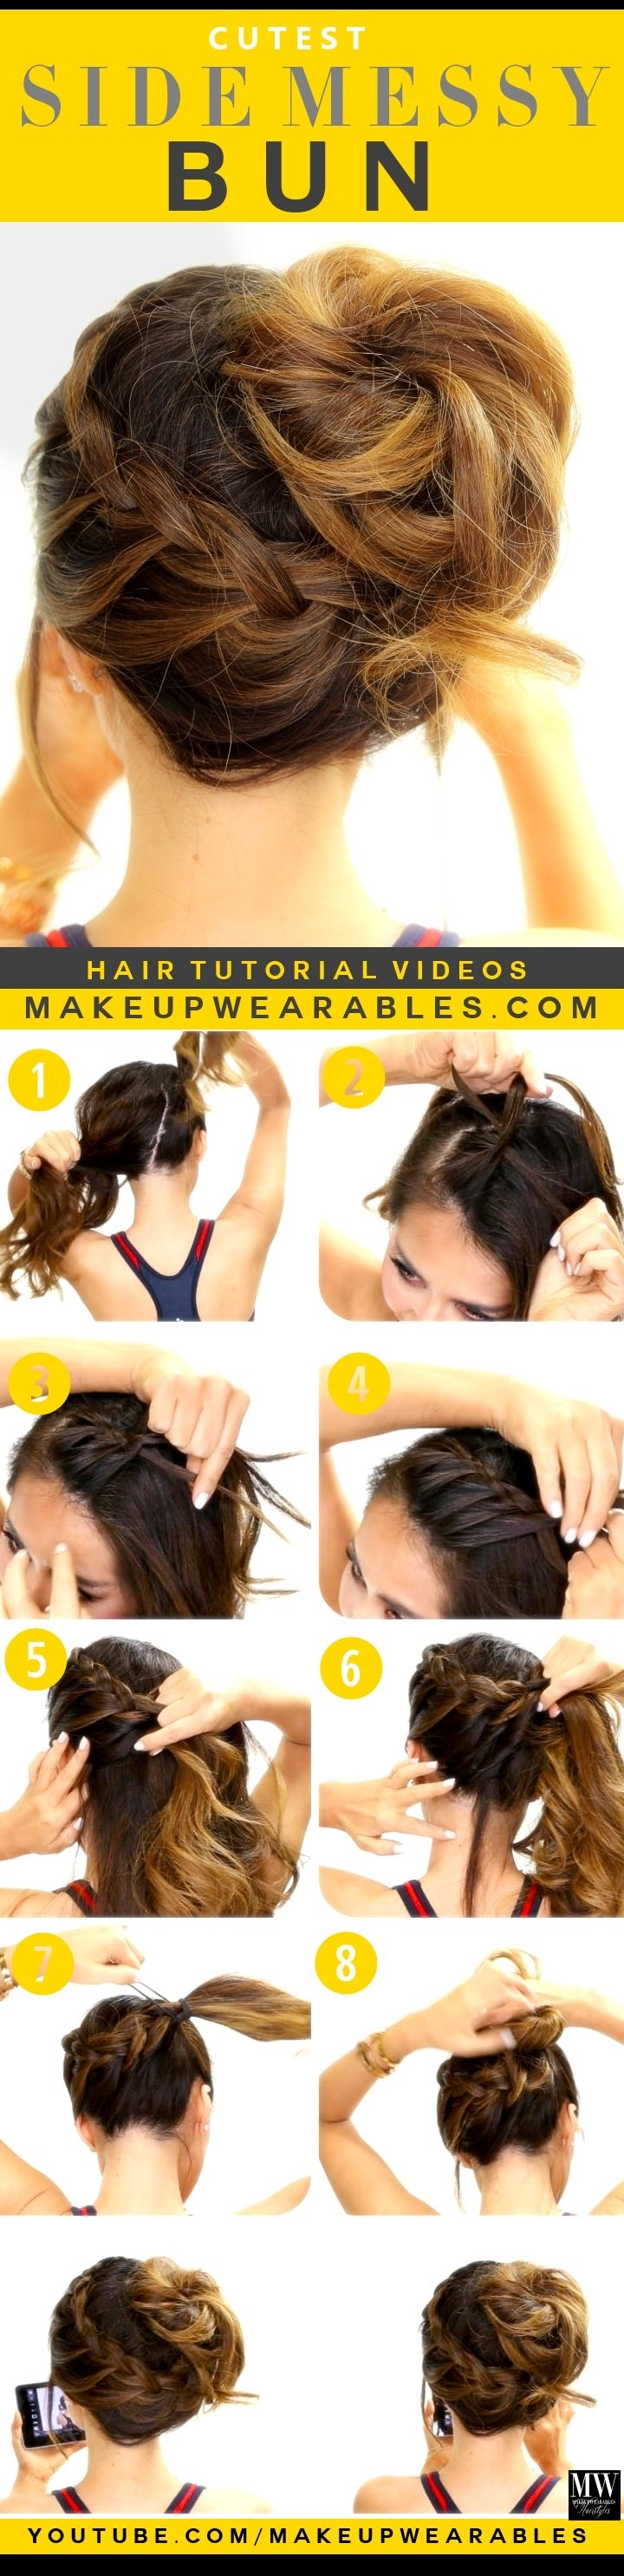 Diy Side Messy Bun Pictures Photos And Images For